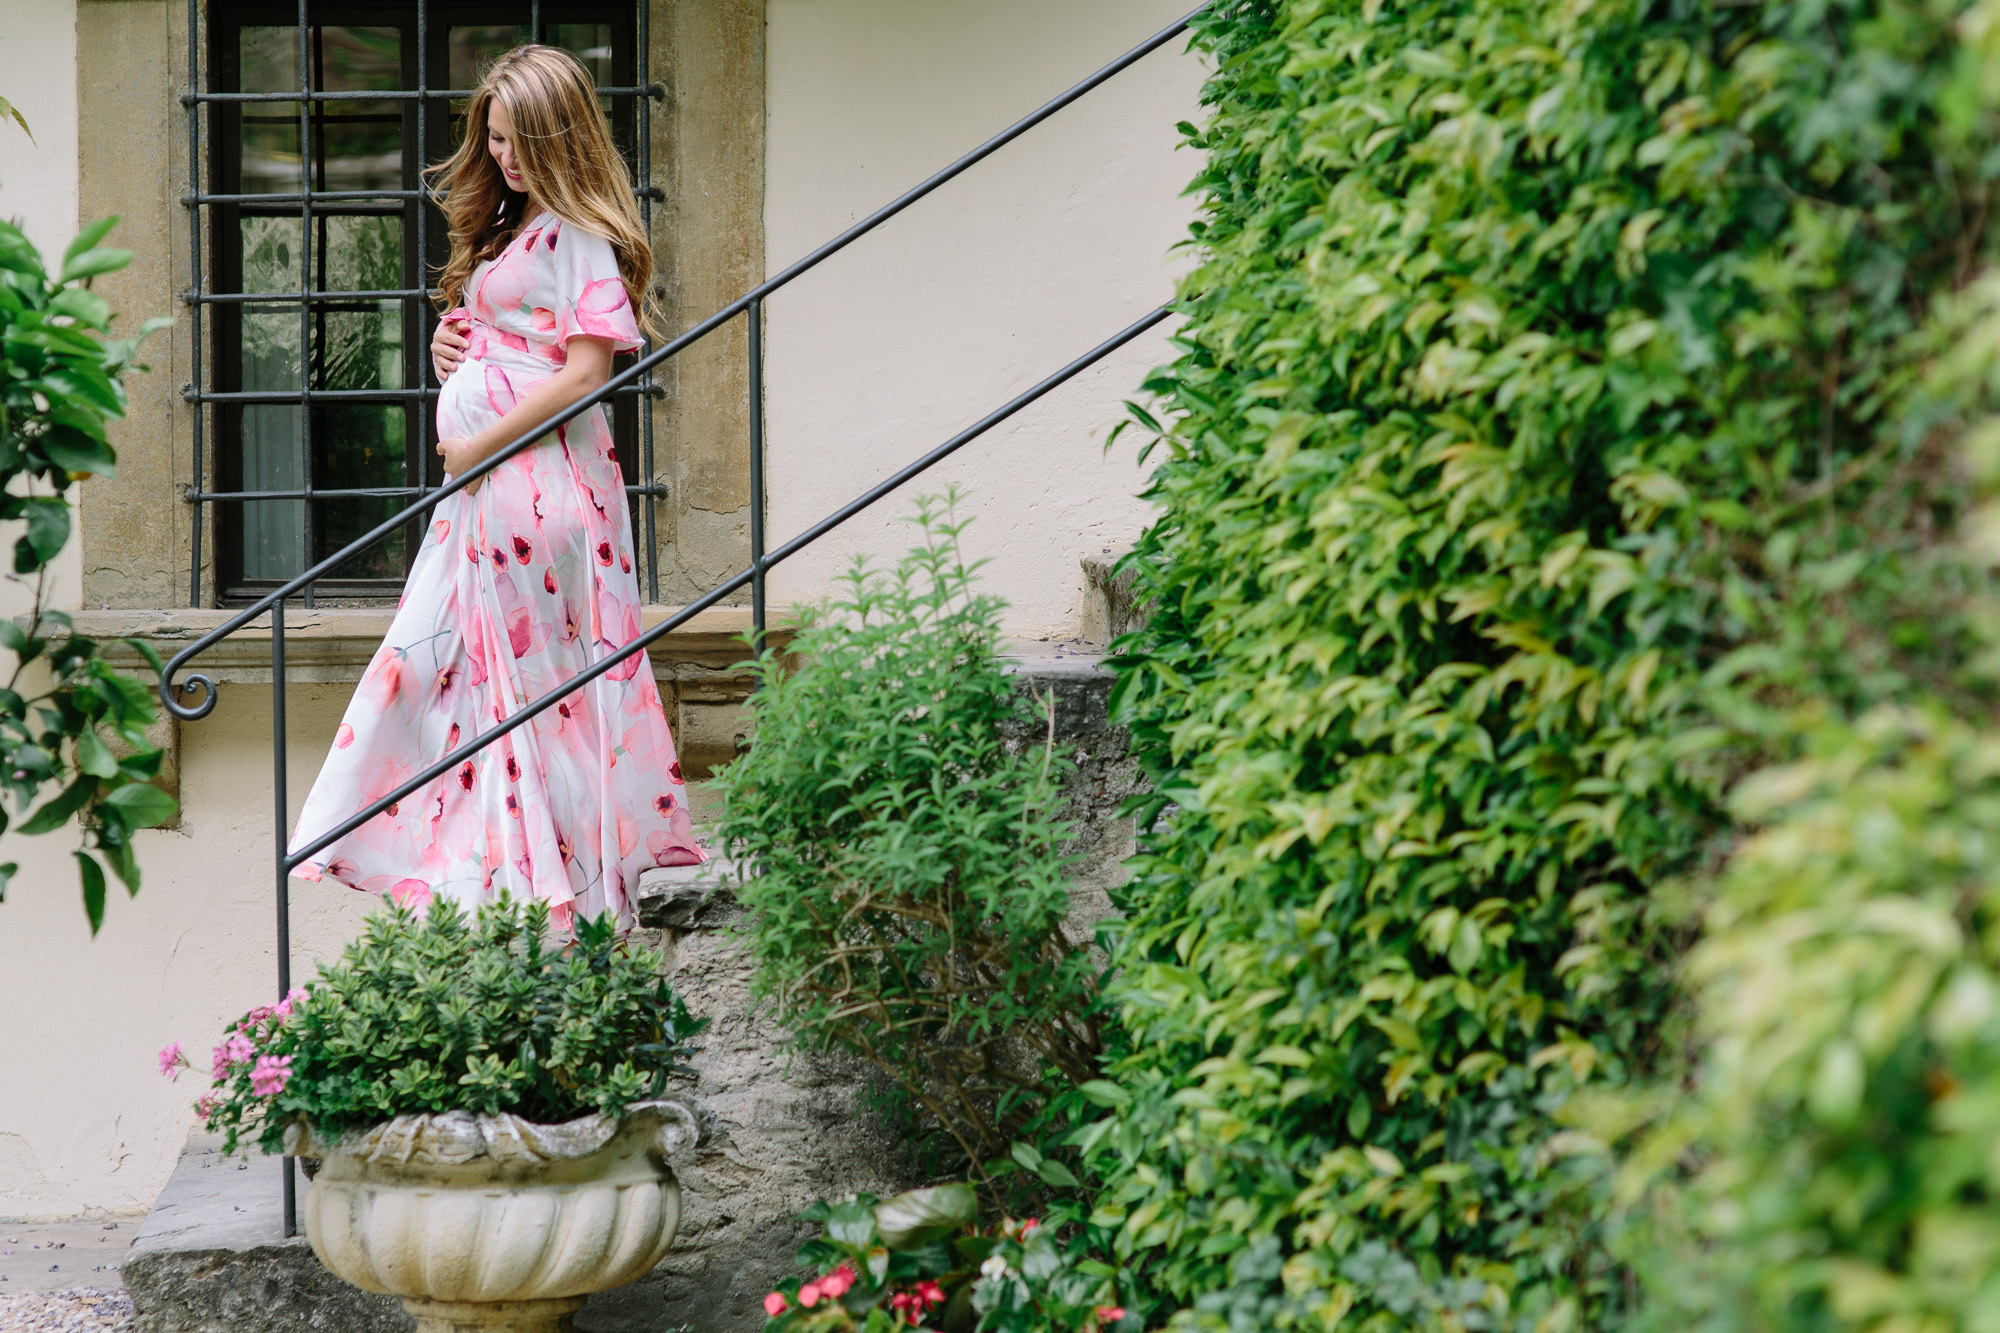 Young pregnant female walking down stairs in a garden in Italy for a maternity session.